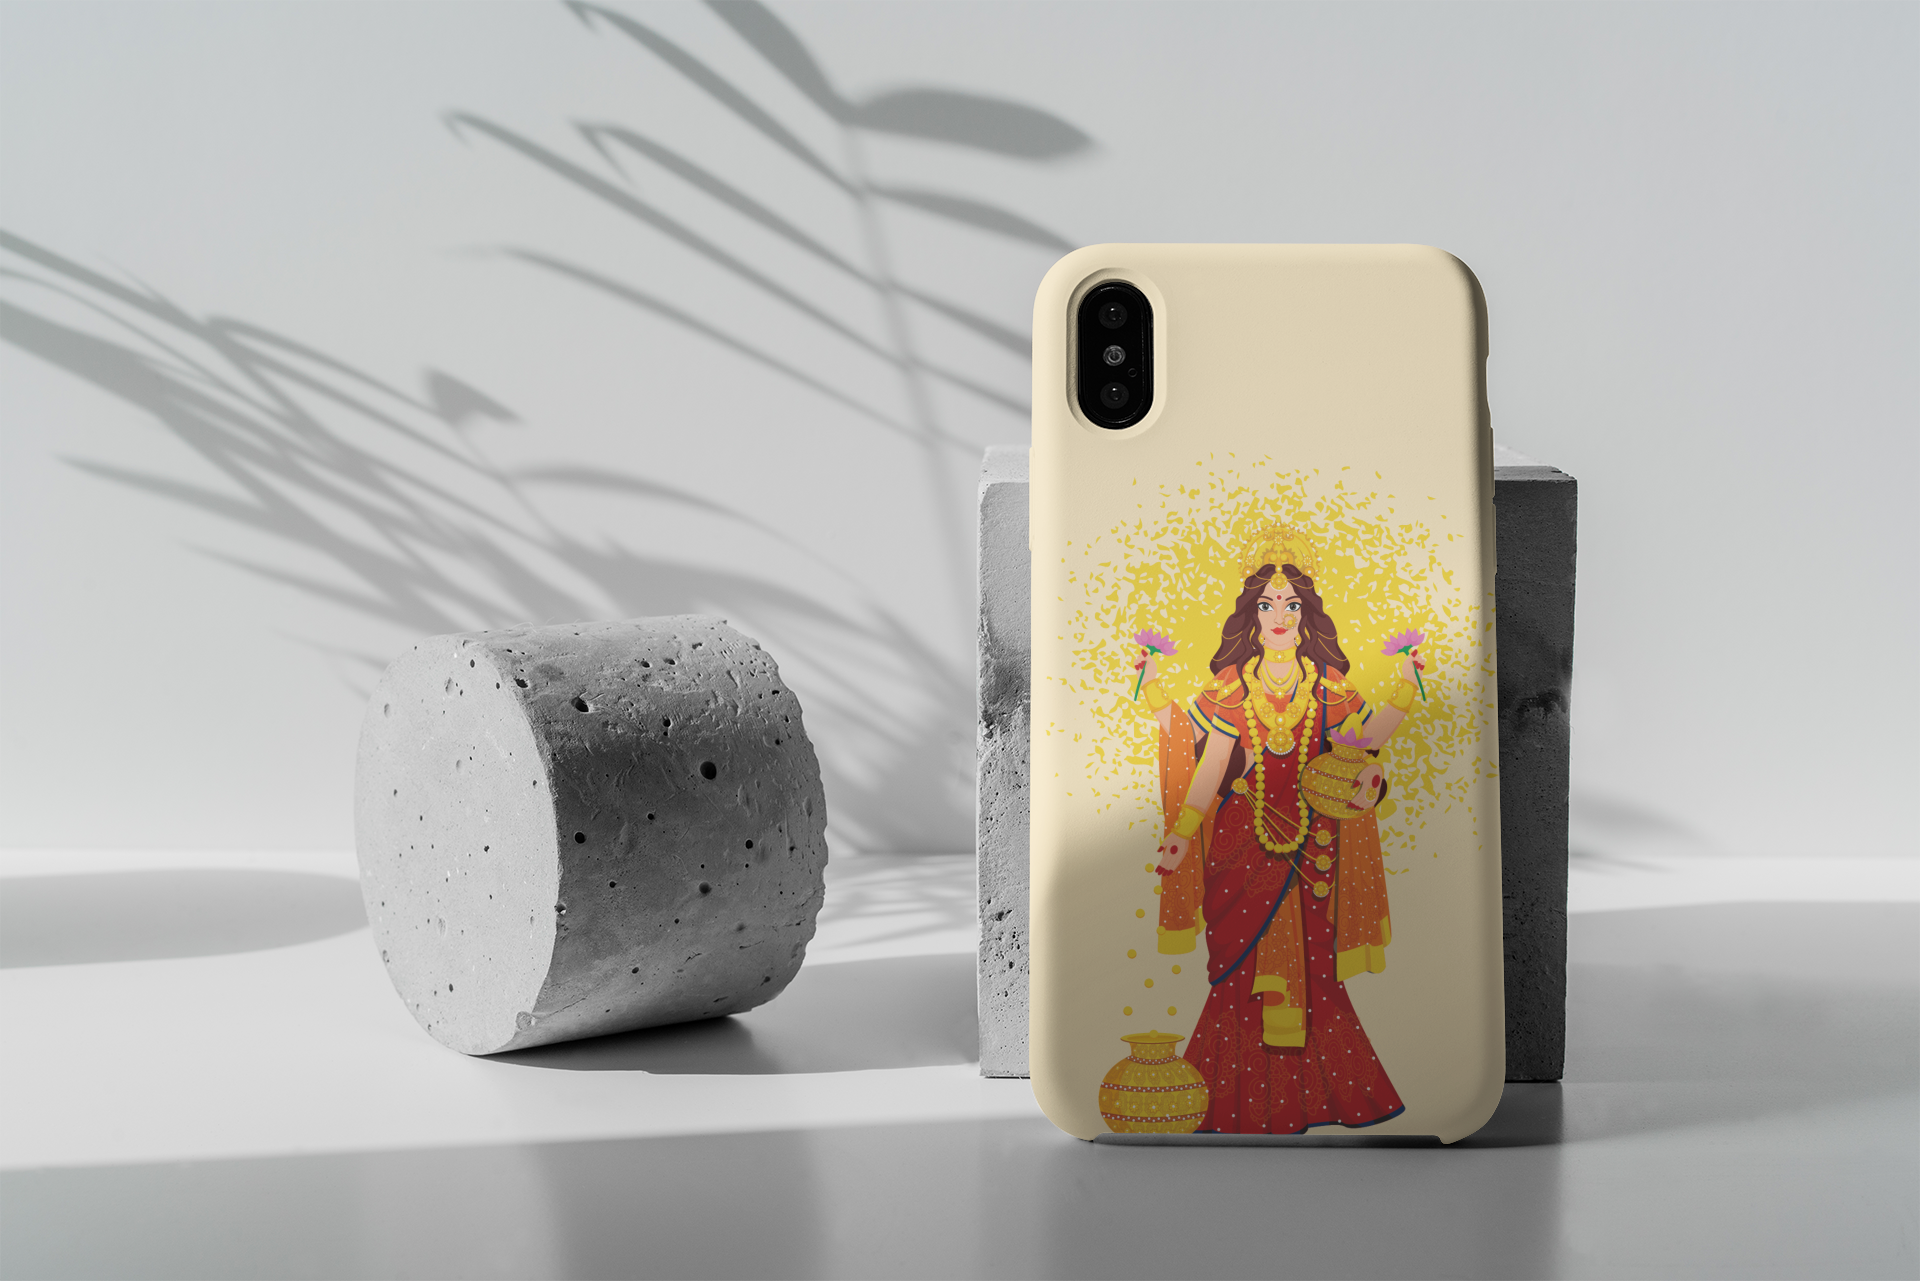 mockup-of-a-phone-case-placed-in-a-minimal-setting-4621-el18